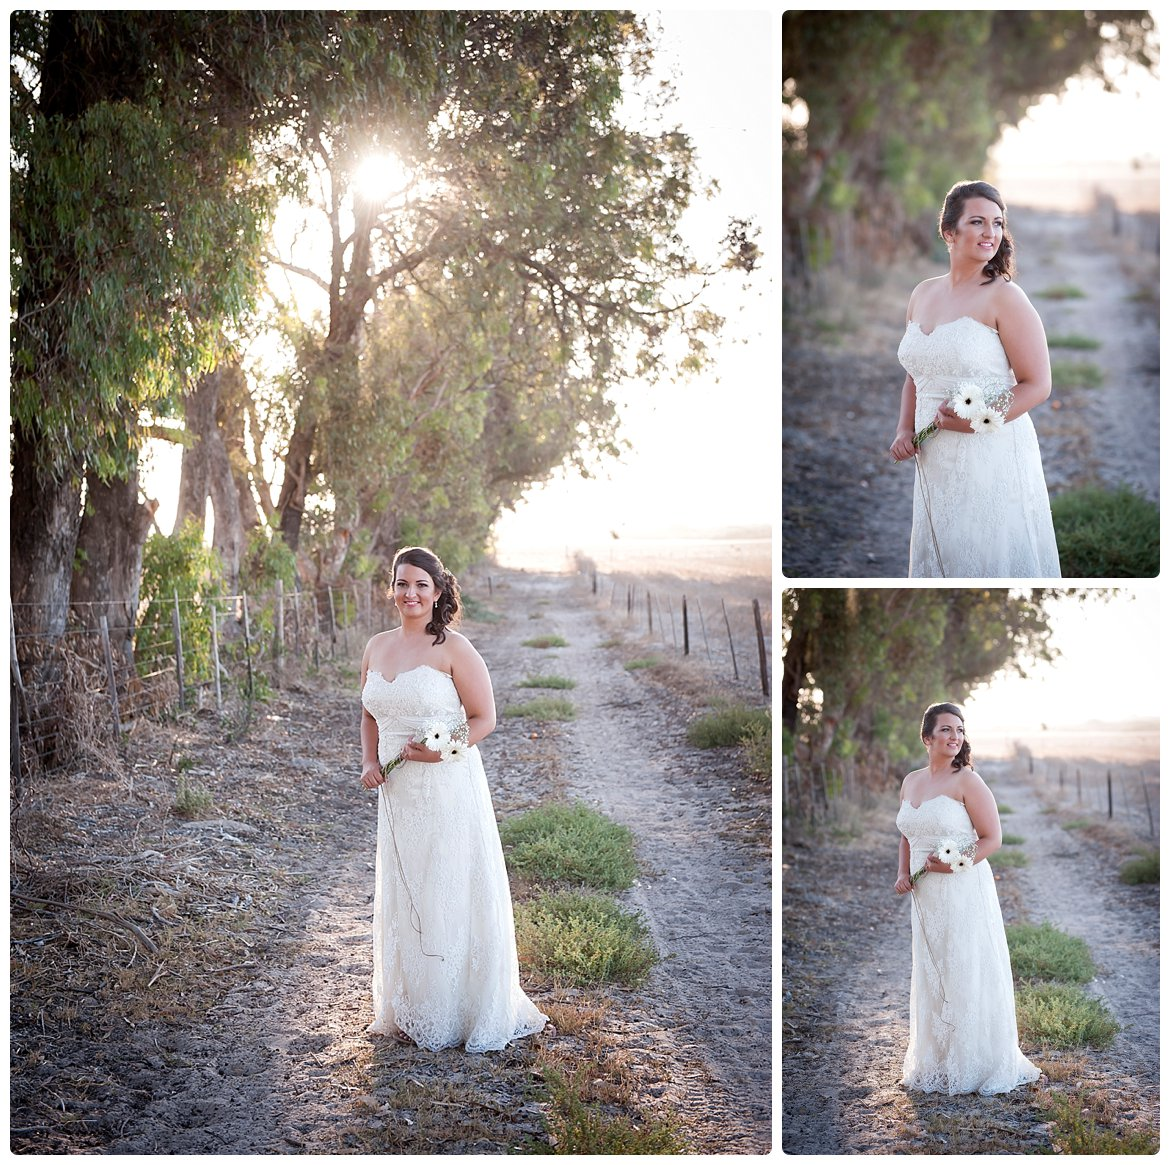 cape-town-wedding-photographer-schaftplaas-langebaan-0029